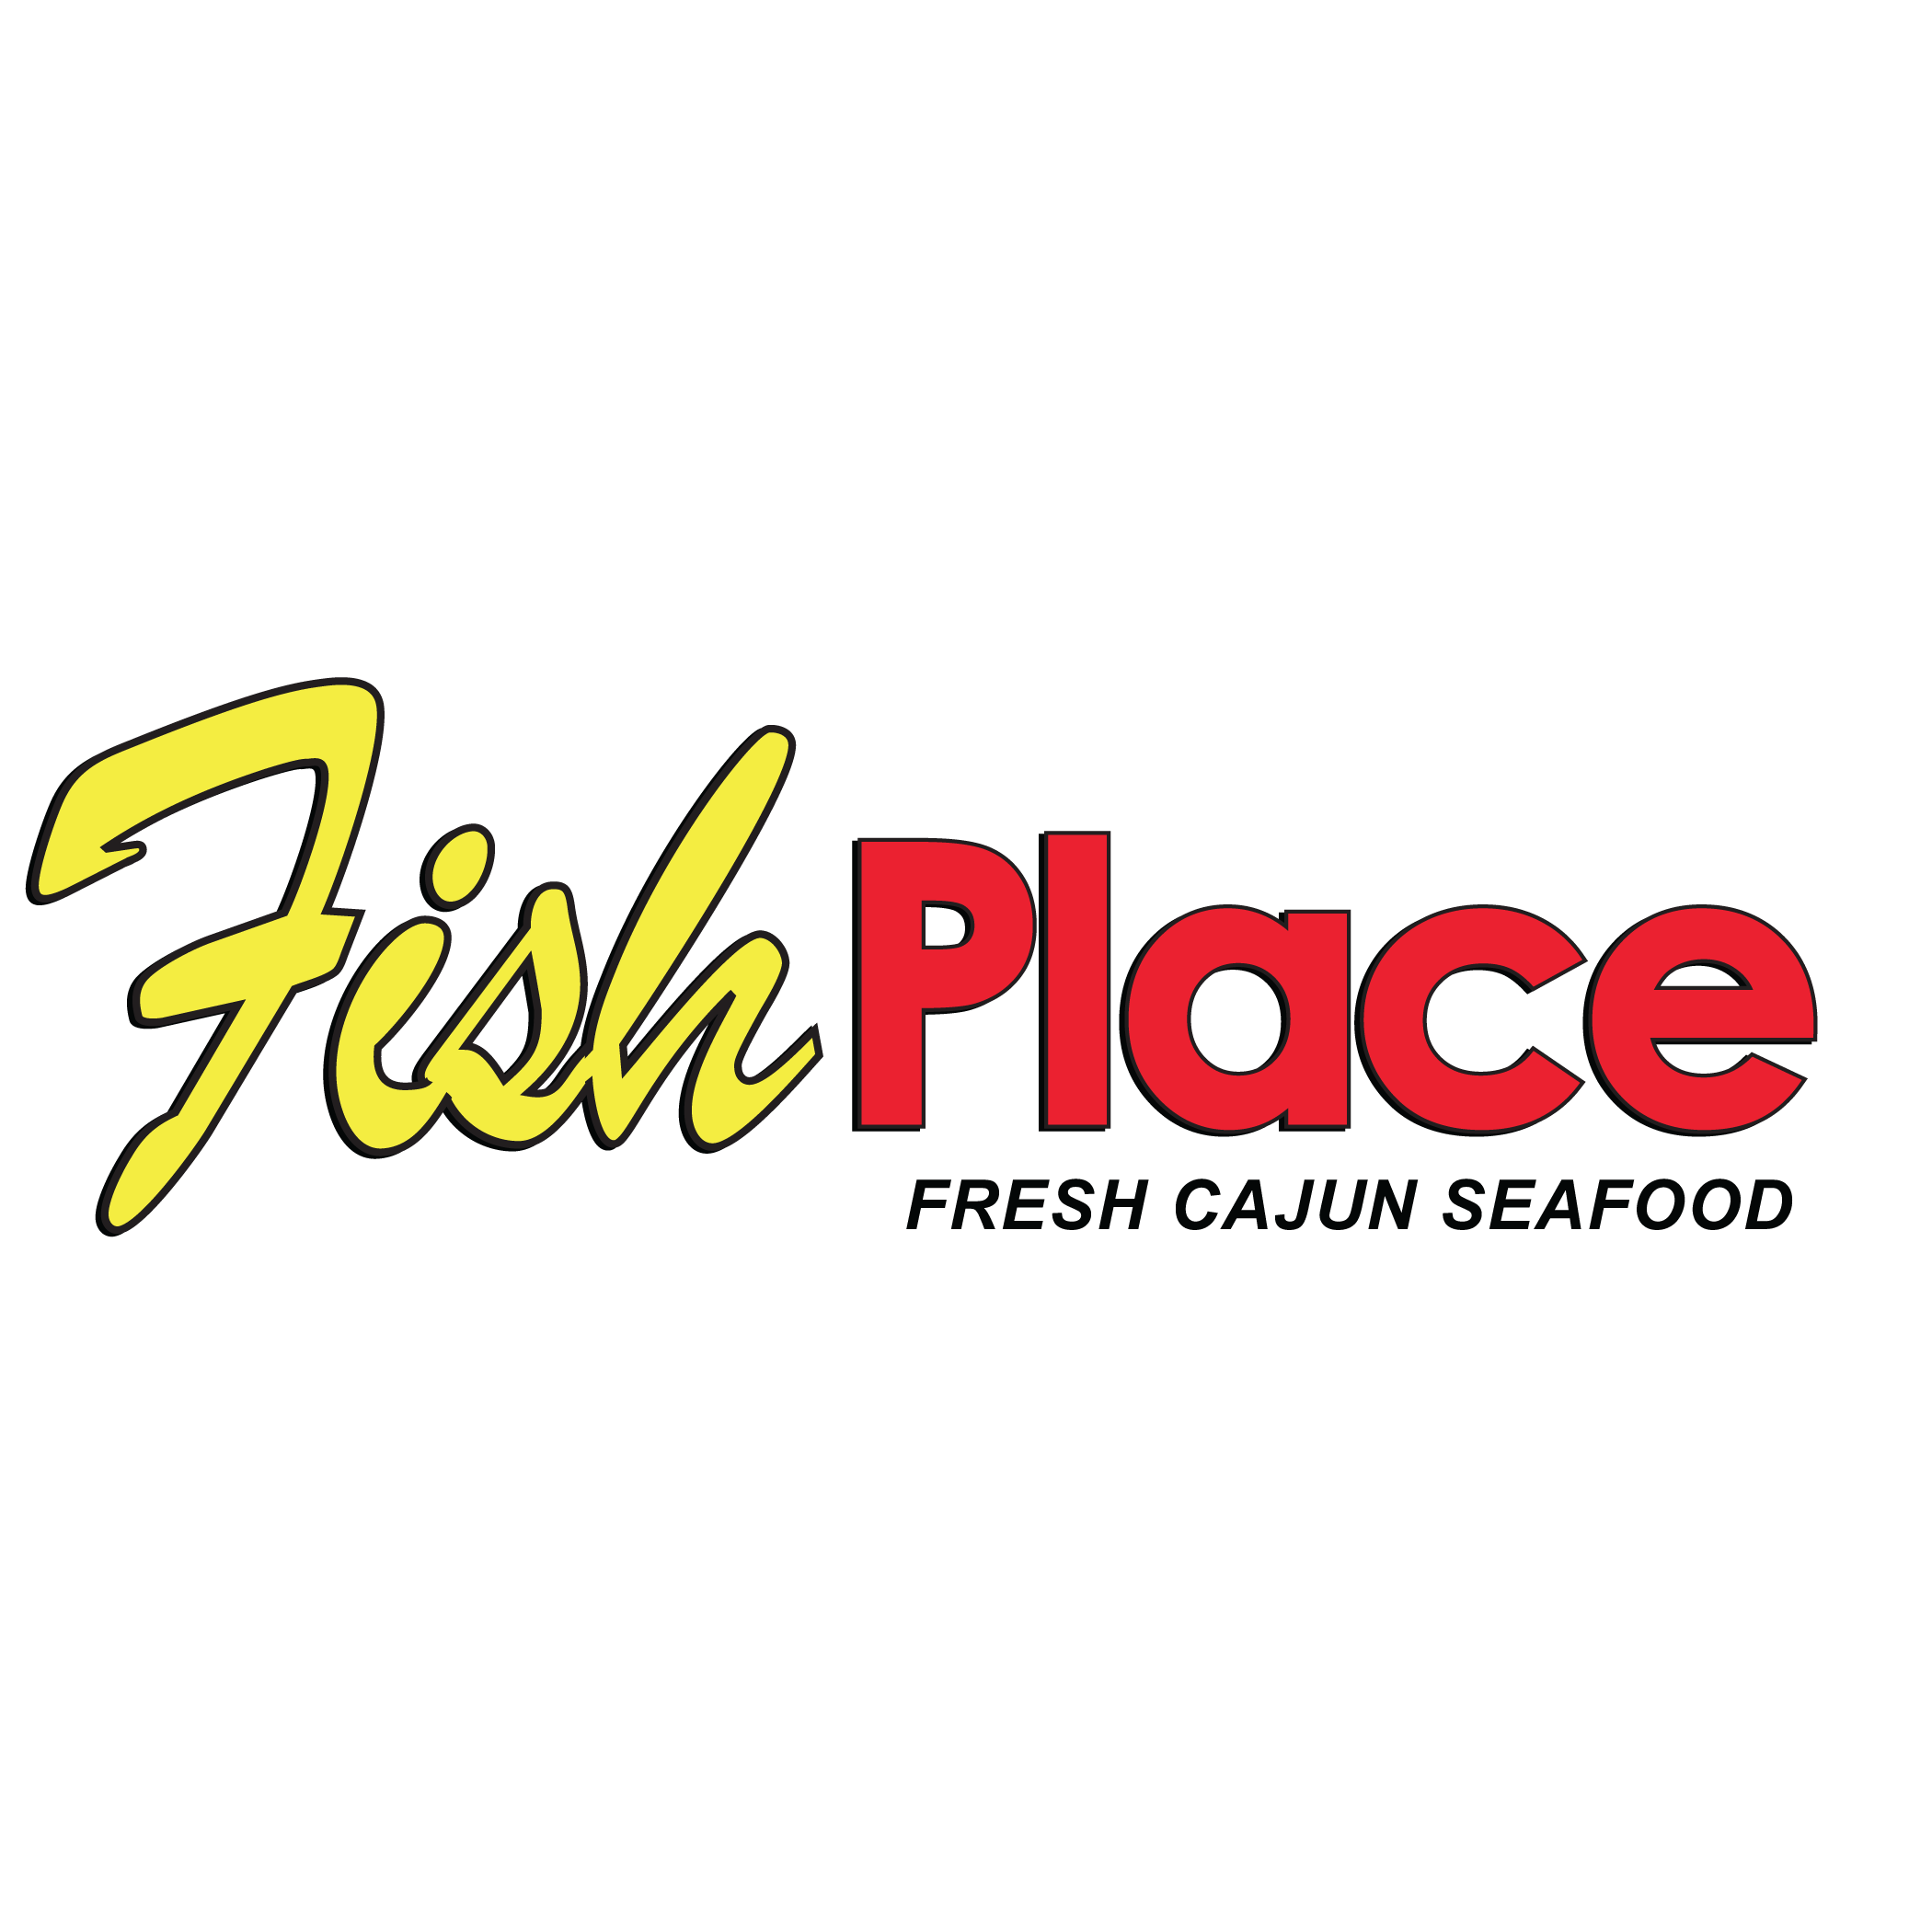 Fish Place